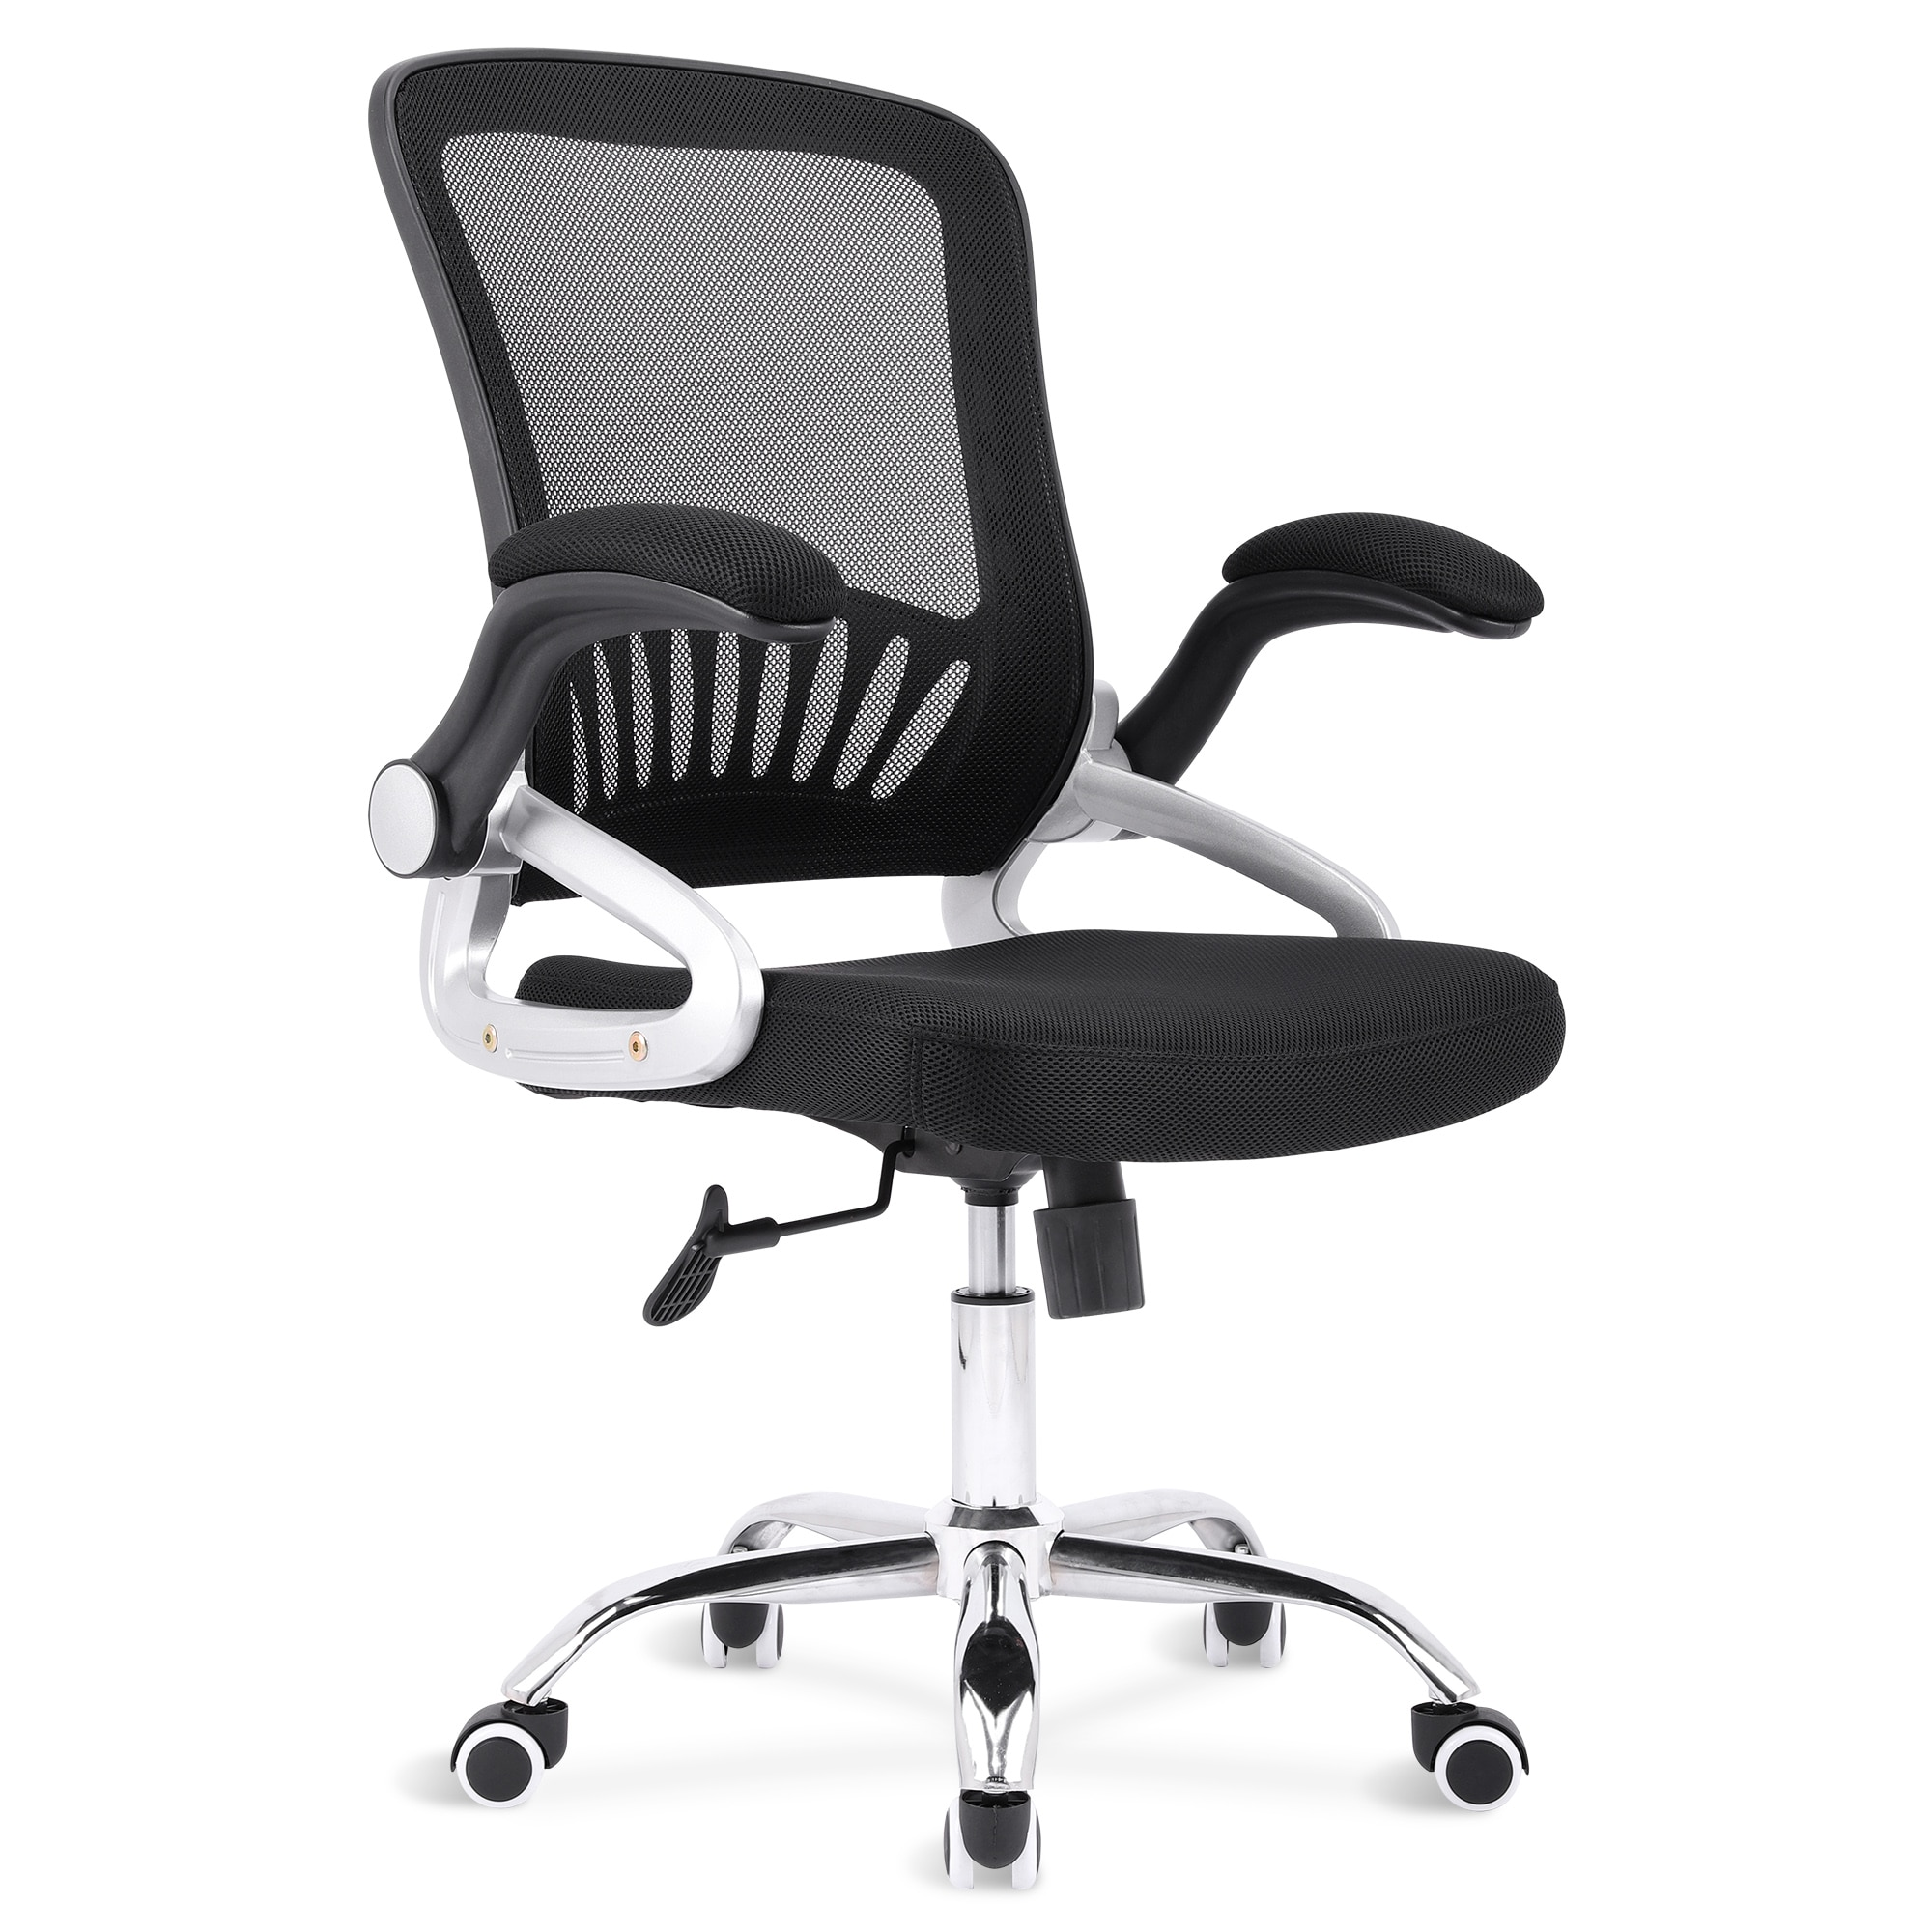 H6f07f456b2764340a04bfdfa0c1d04a72 - Sigtua Swivel Office Chair Height-adjustable Desk Chair Breathable PC Chair Comfortable Ergonomic Executive Computer Chair Black